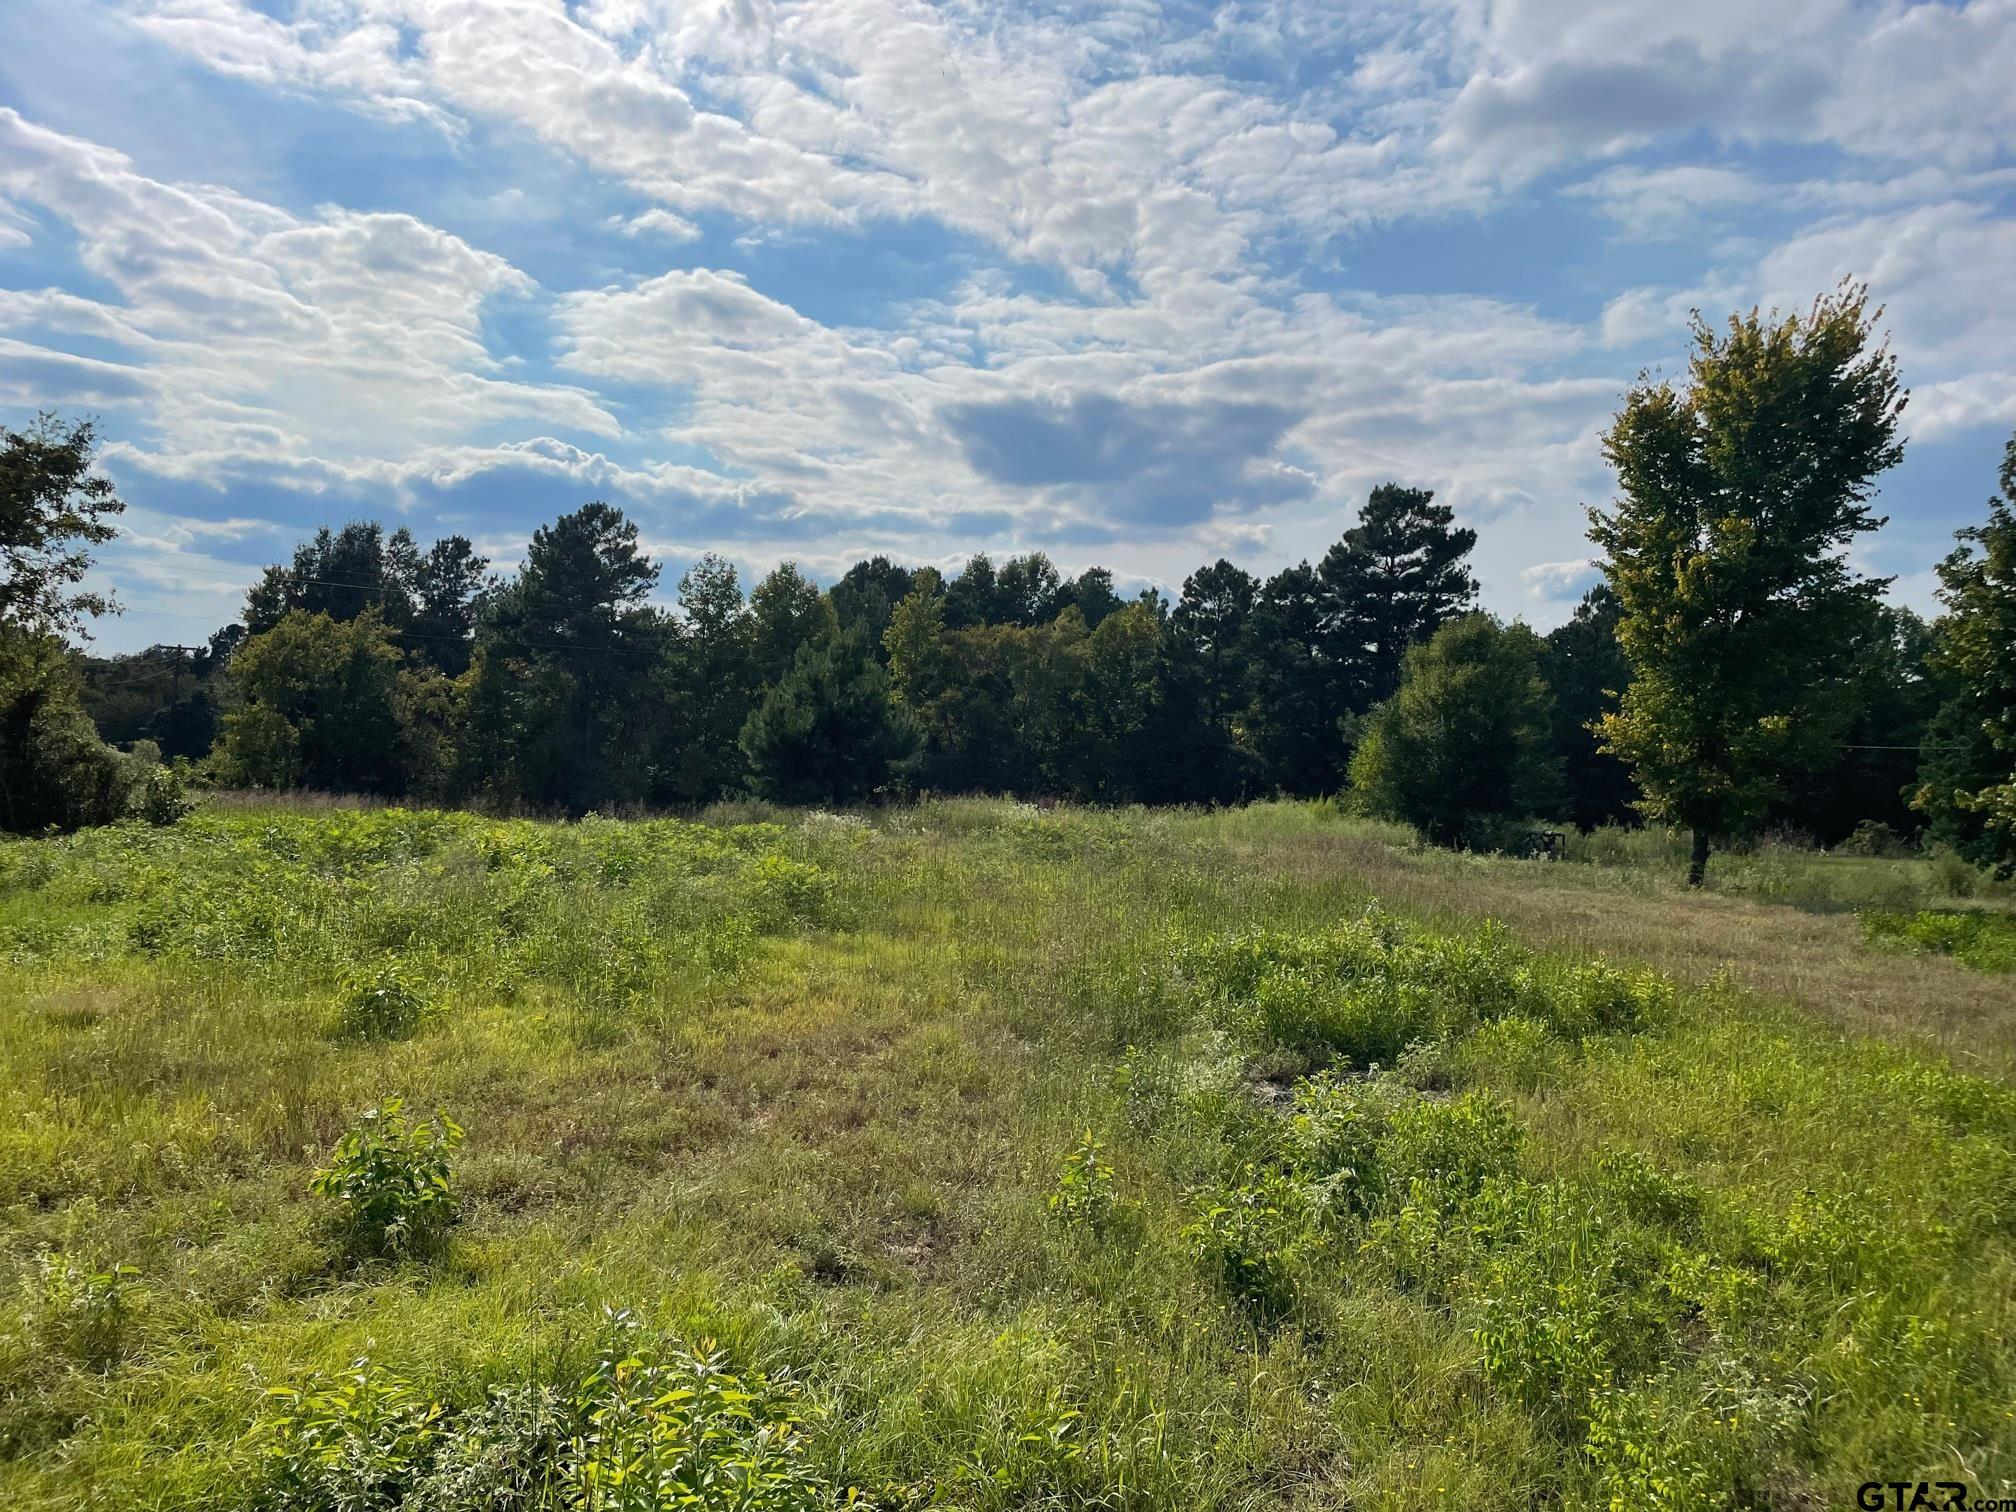 2.8 Acres in Union Grove ISD! This land has been cleared and is ready for you to build on! There is a tank battery on the property and some encumbrances. Drive out and take a look at this beautiful tract.  Call or text for more information!